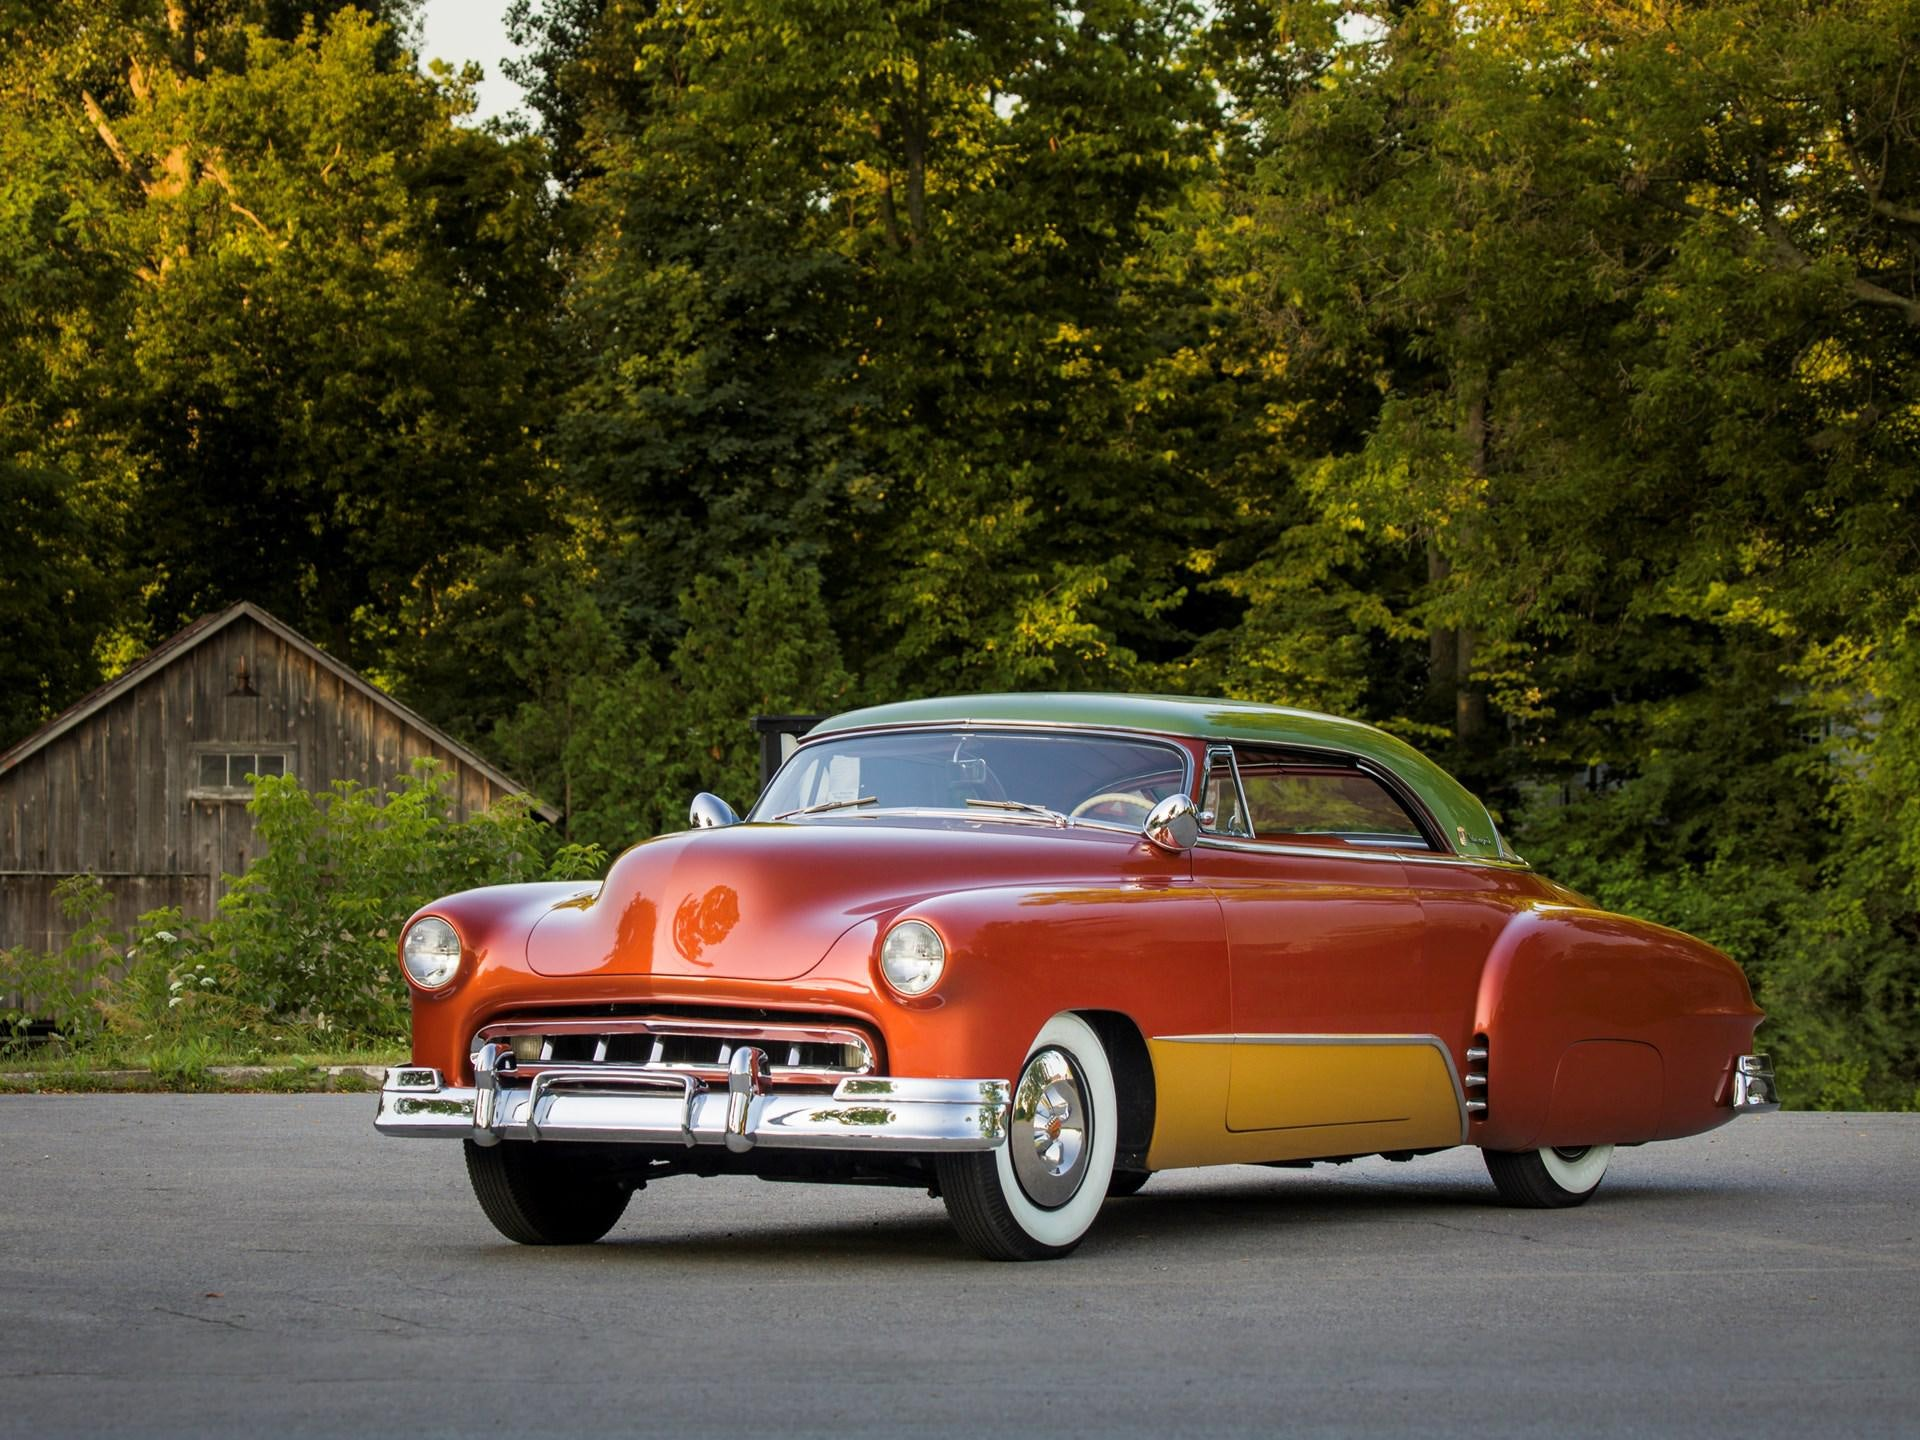 1951 Chevrolet Bel Air Royal Recreation